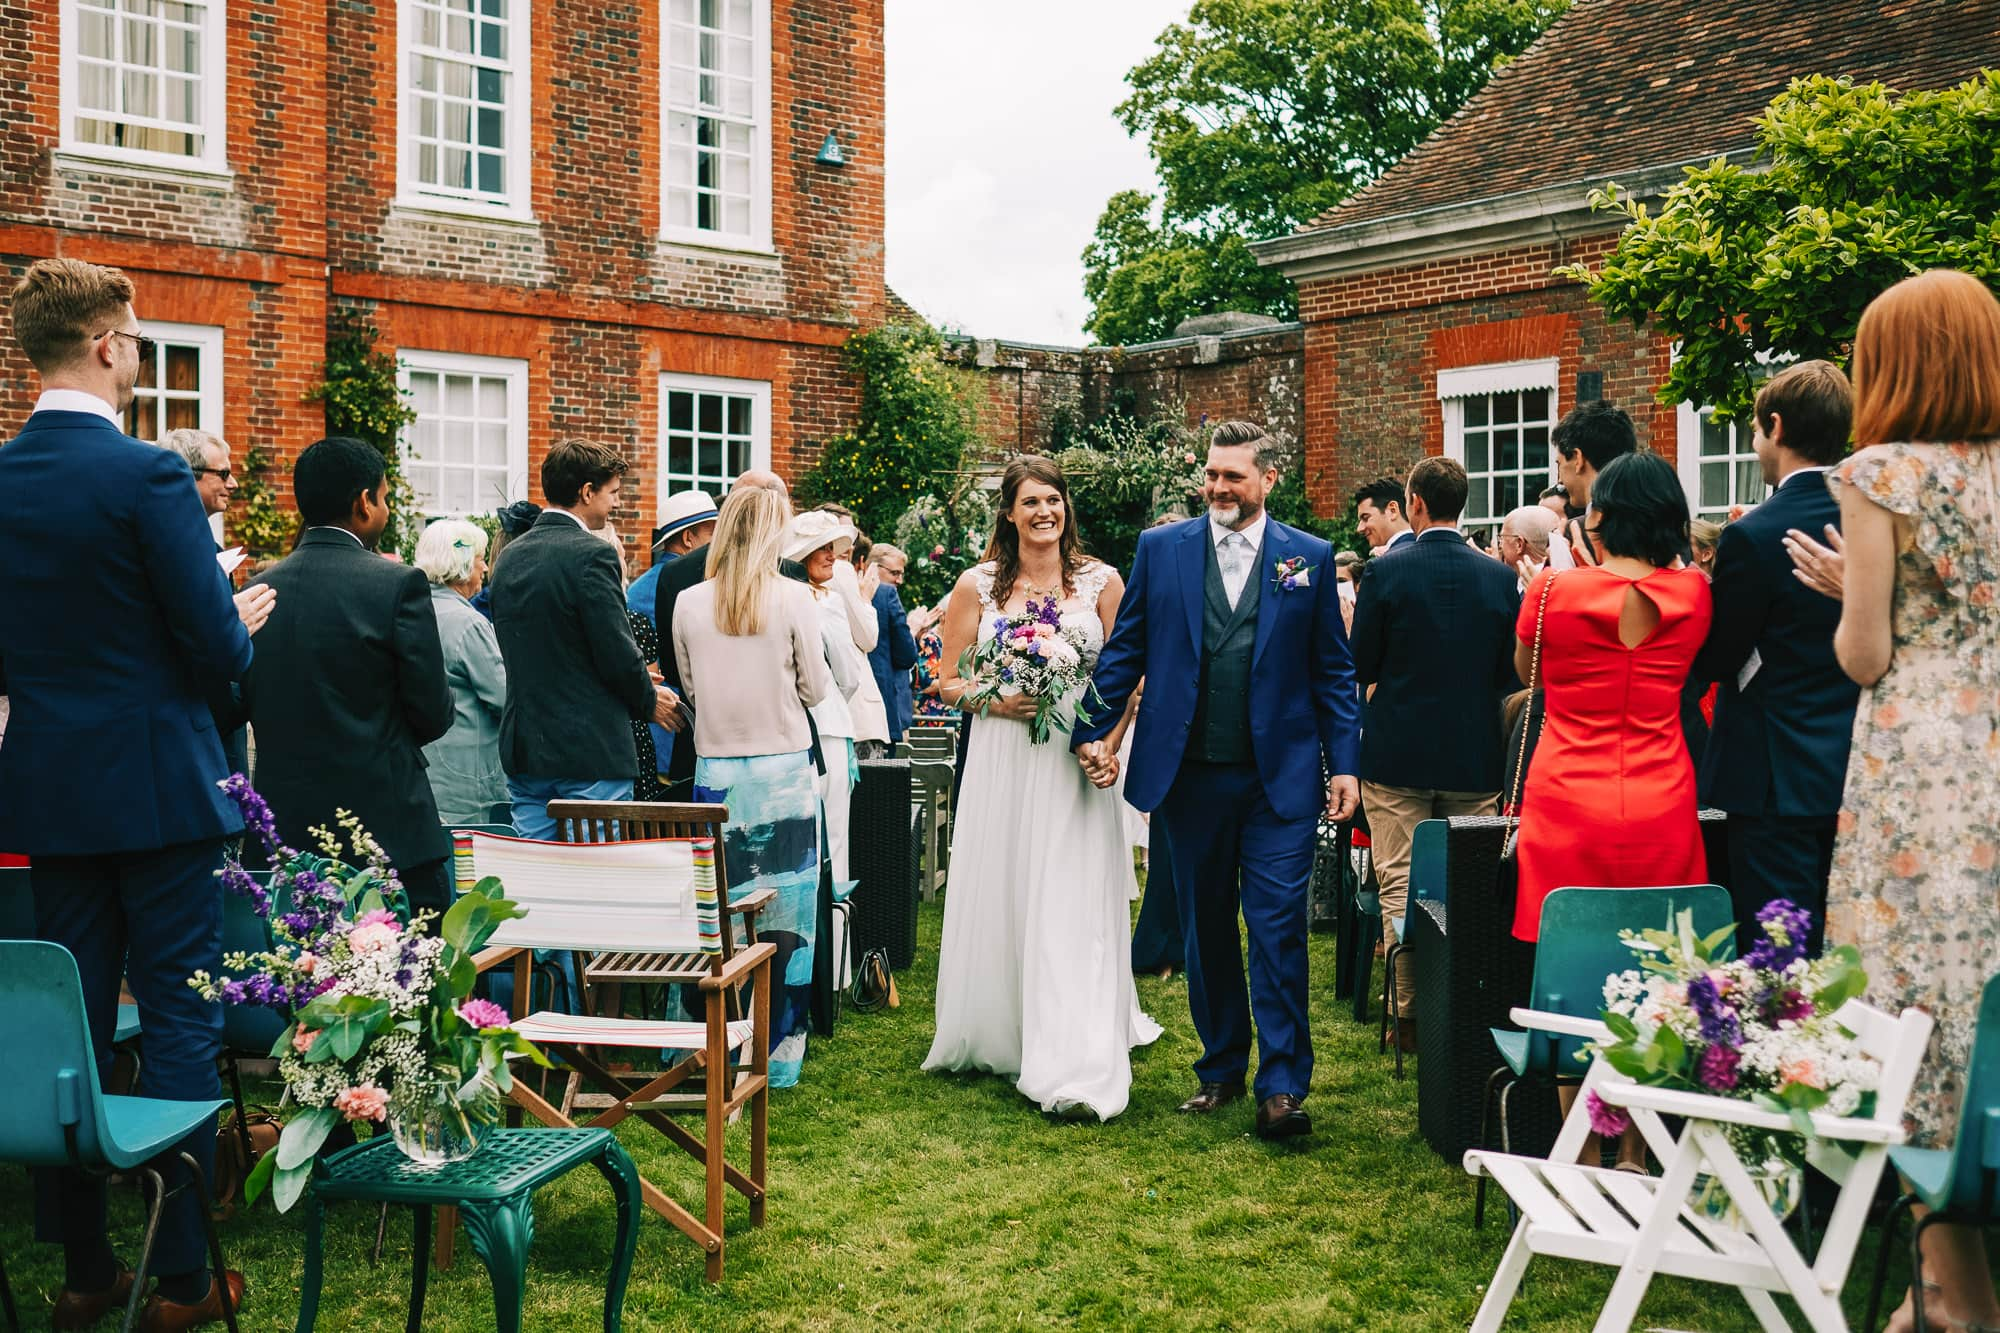 Canterbury Wedding Photographer - Groom laughs with his bestman